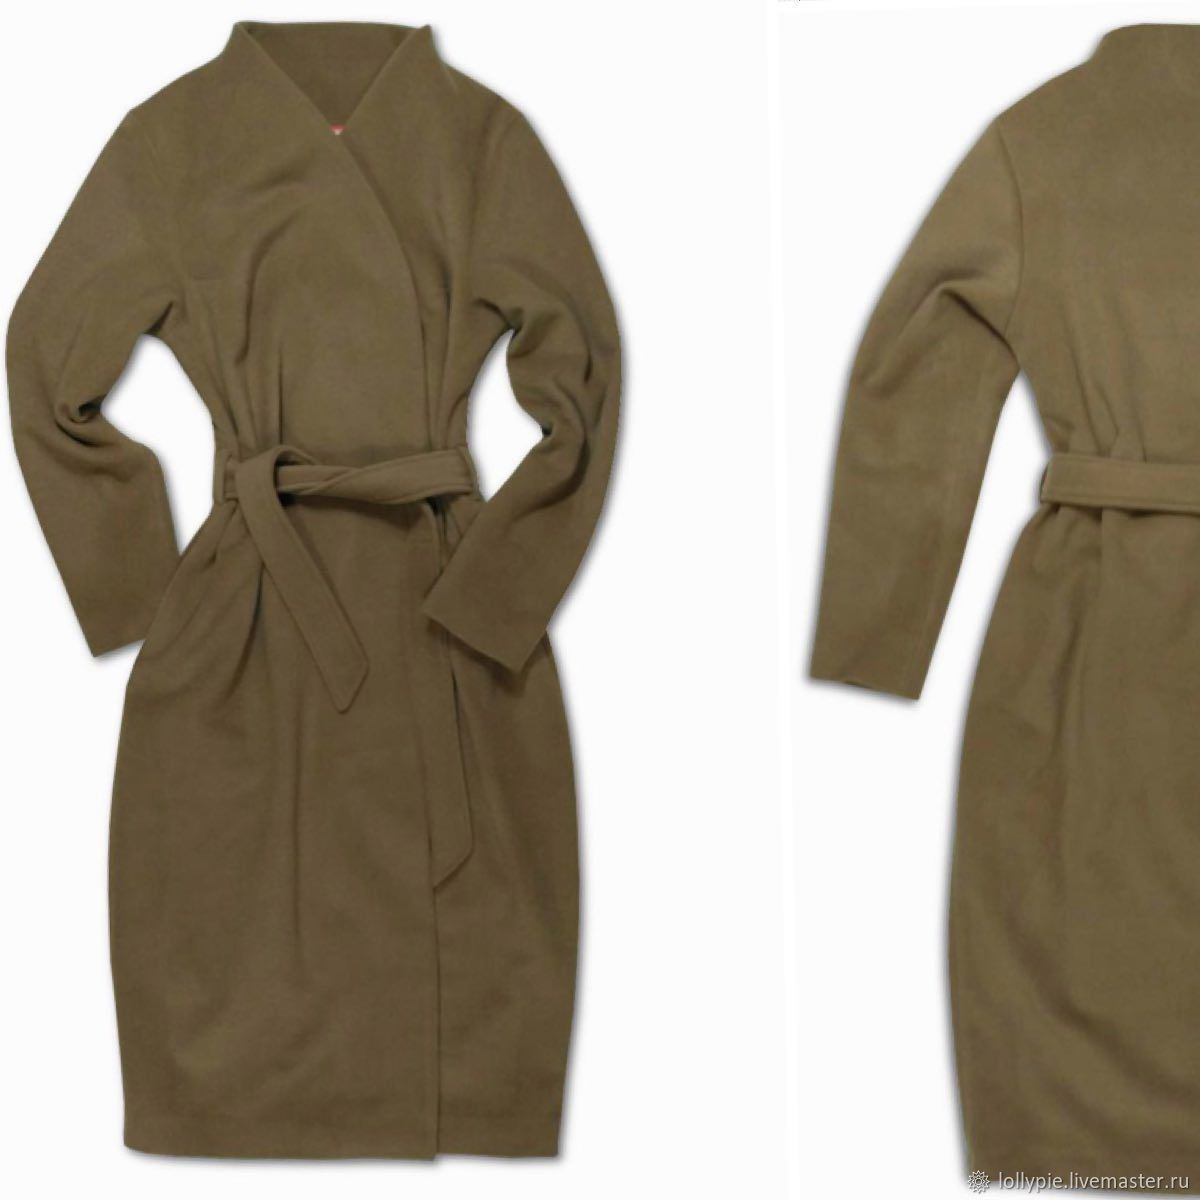 Coat with a smell, with a belt beige warm, Coats, Moscow,  Фото №1